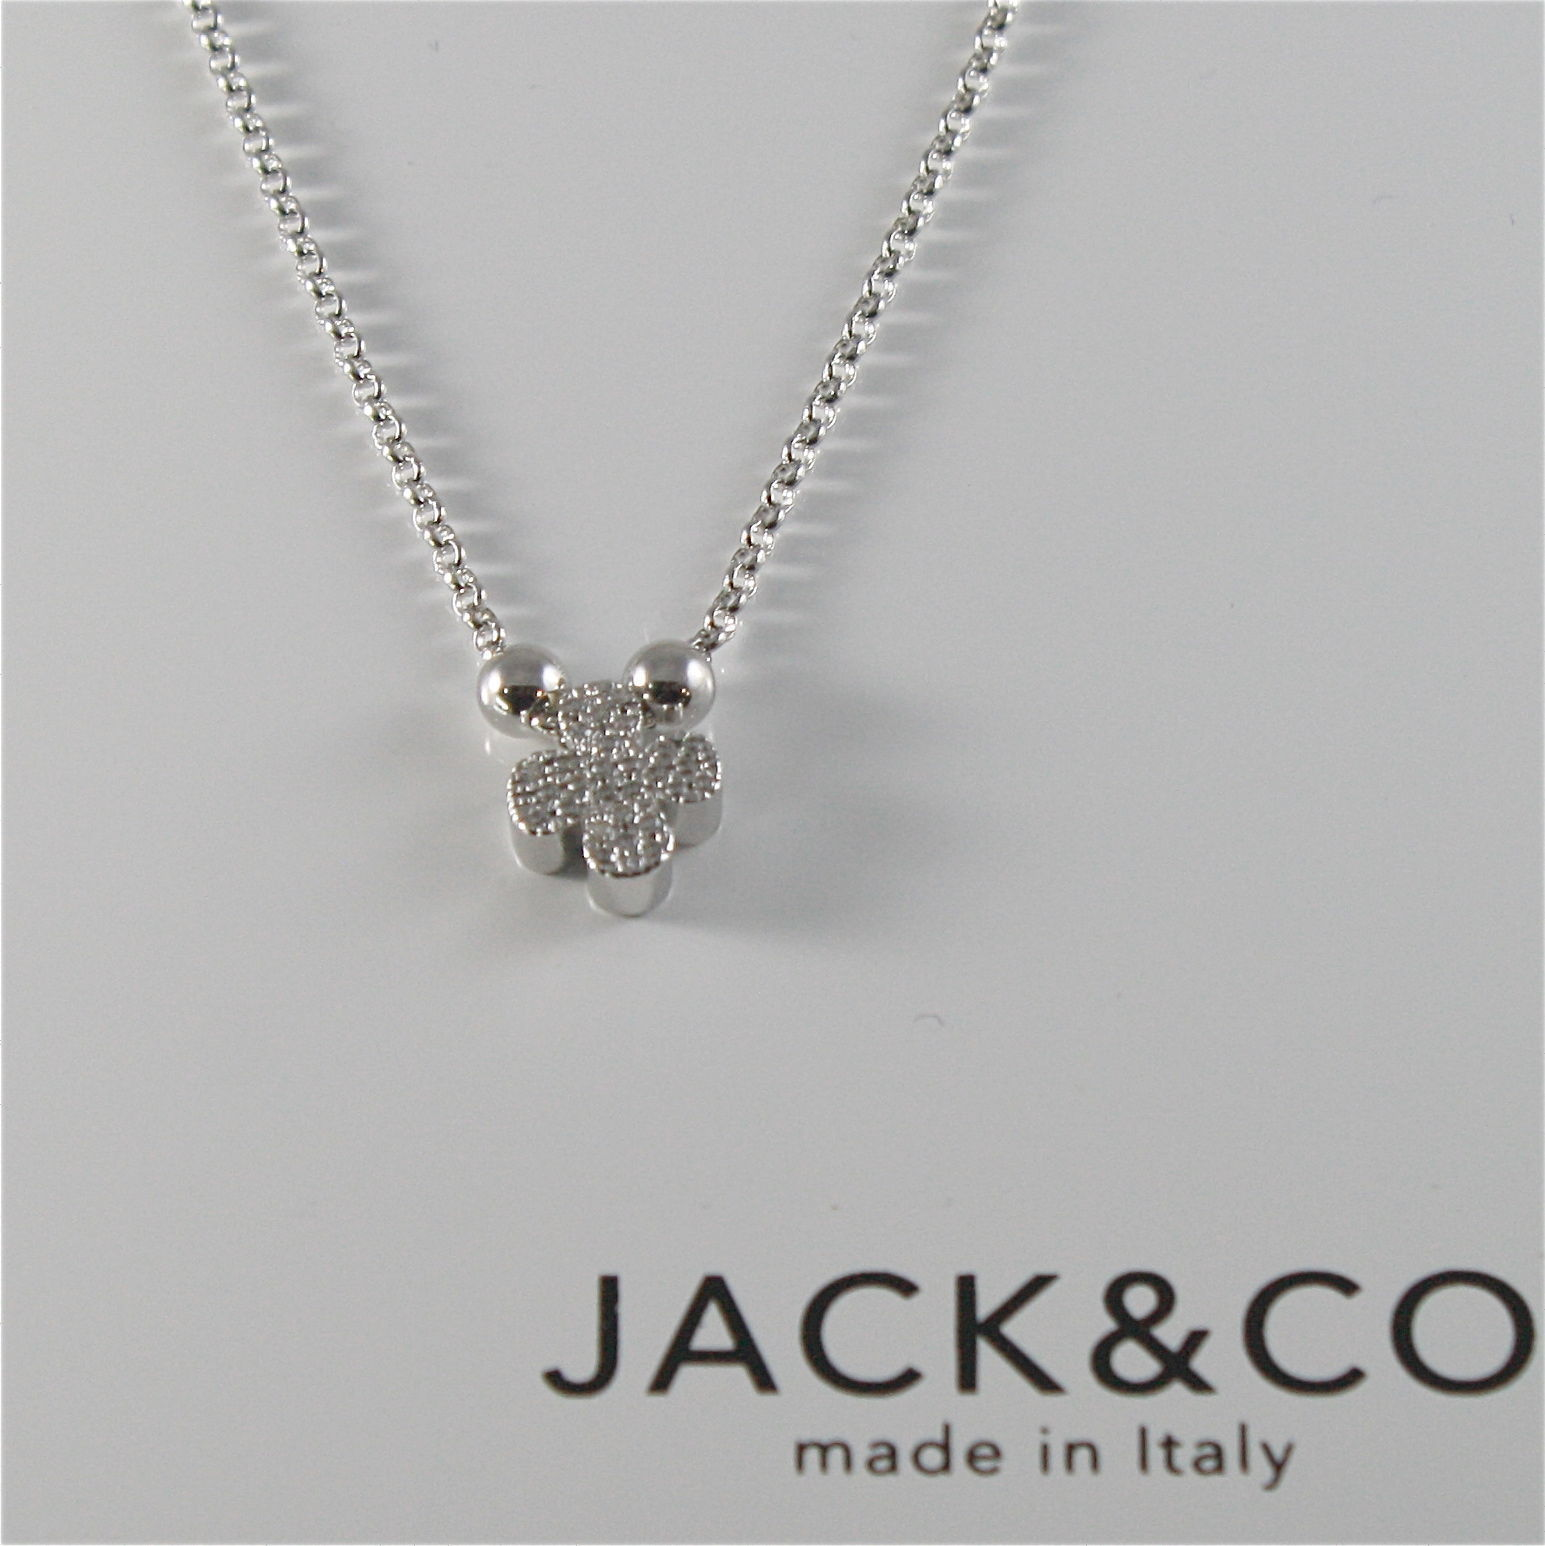 CHAIN TO RINGS 925 SILVER JACK&CO WITH FOUR-LEAF CLOVER WITH ZIRCON JCN0528